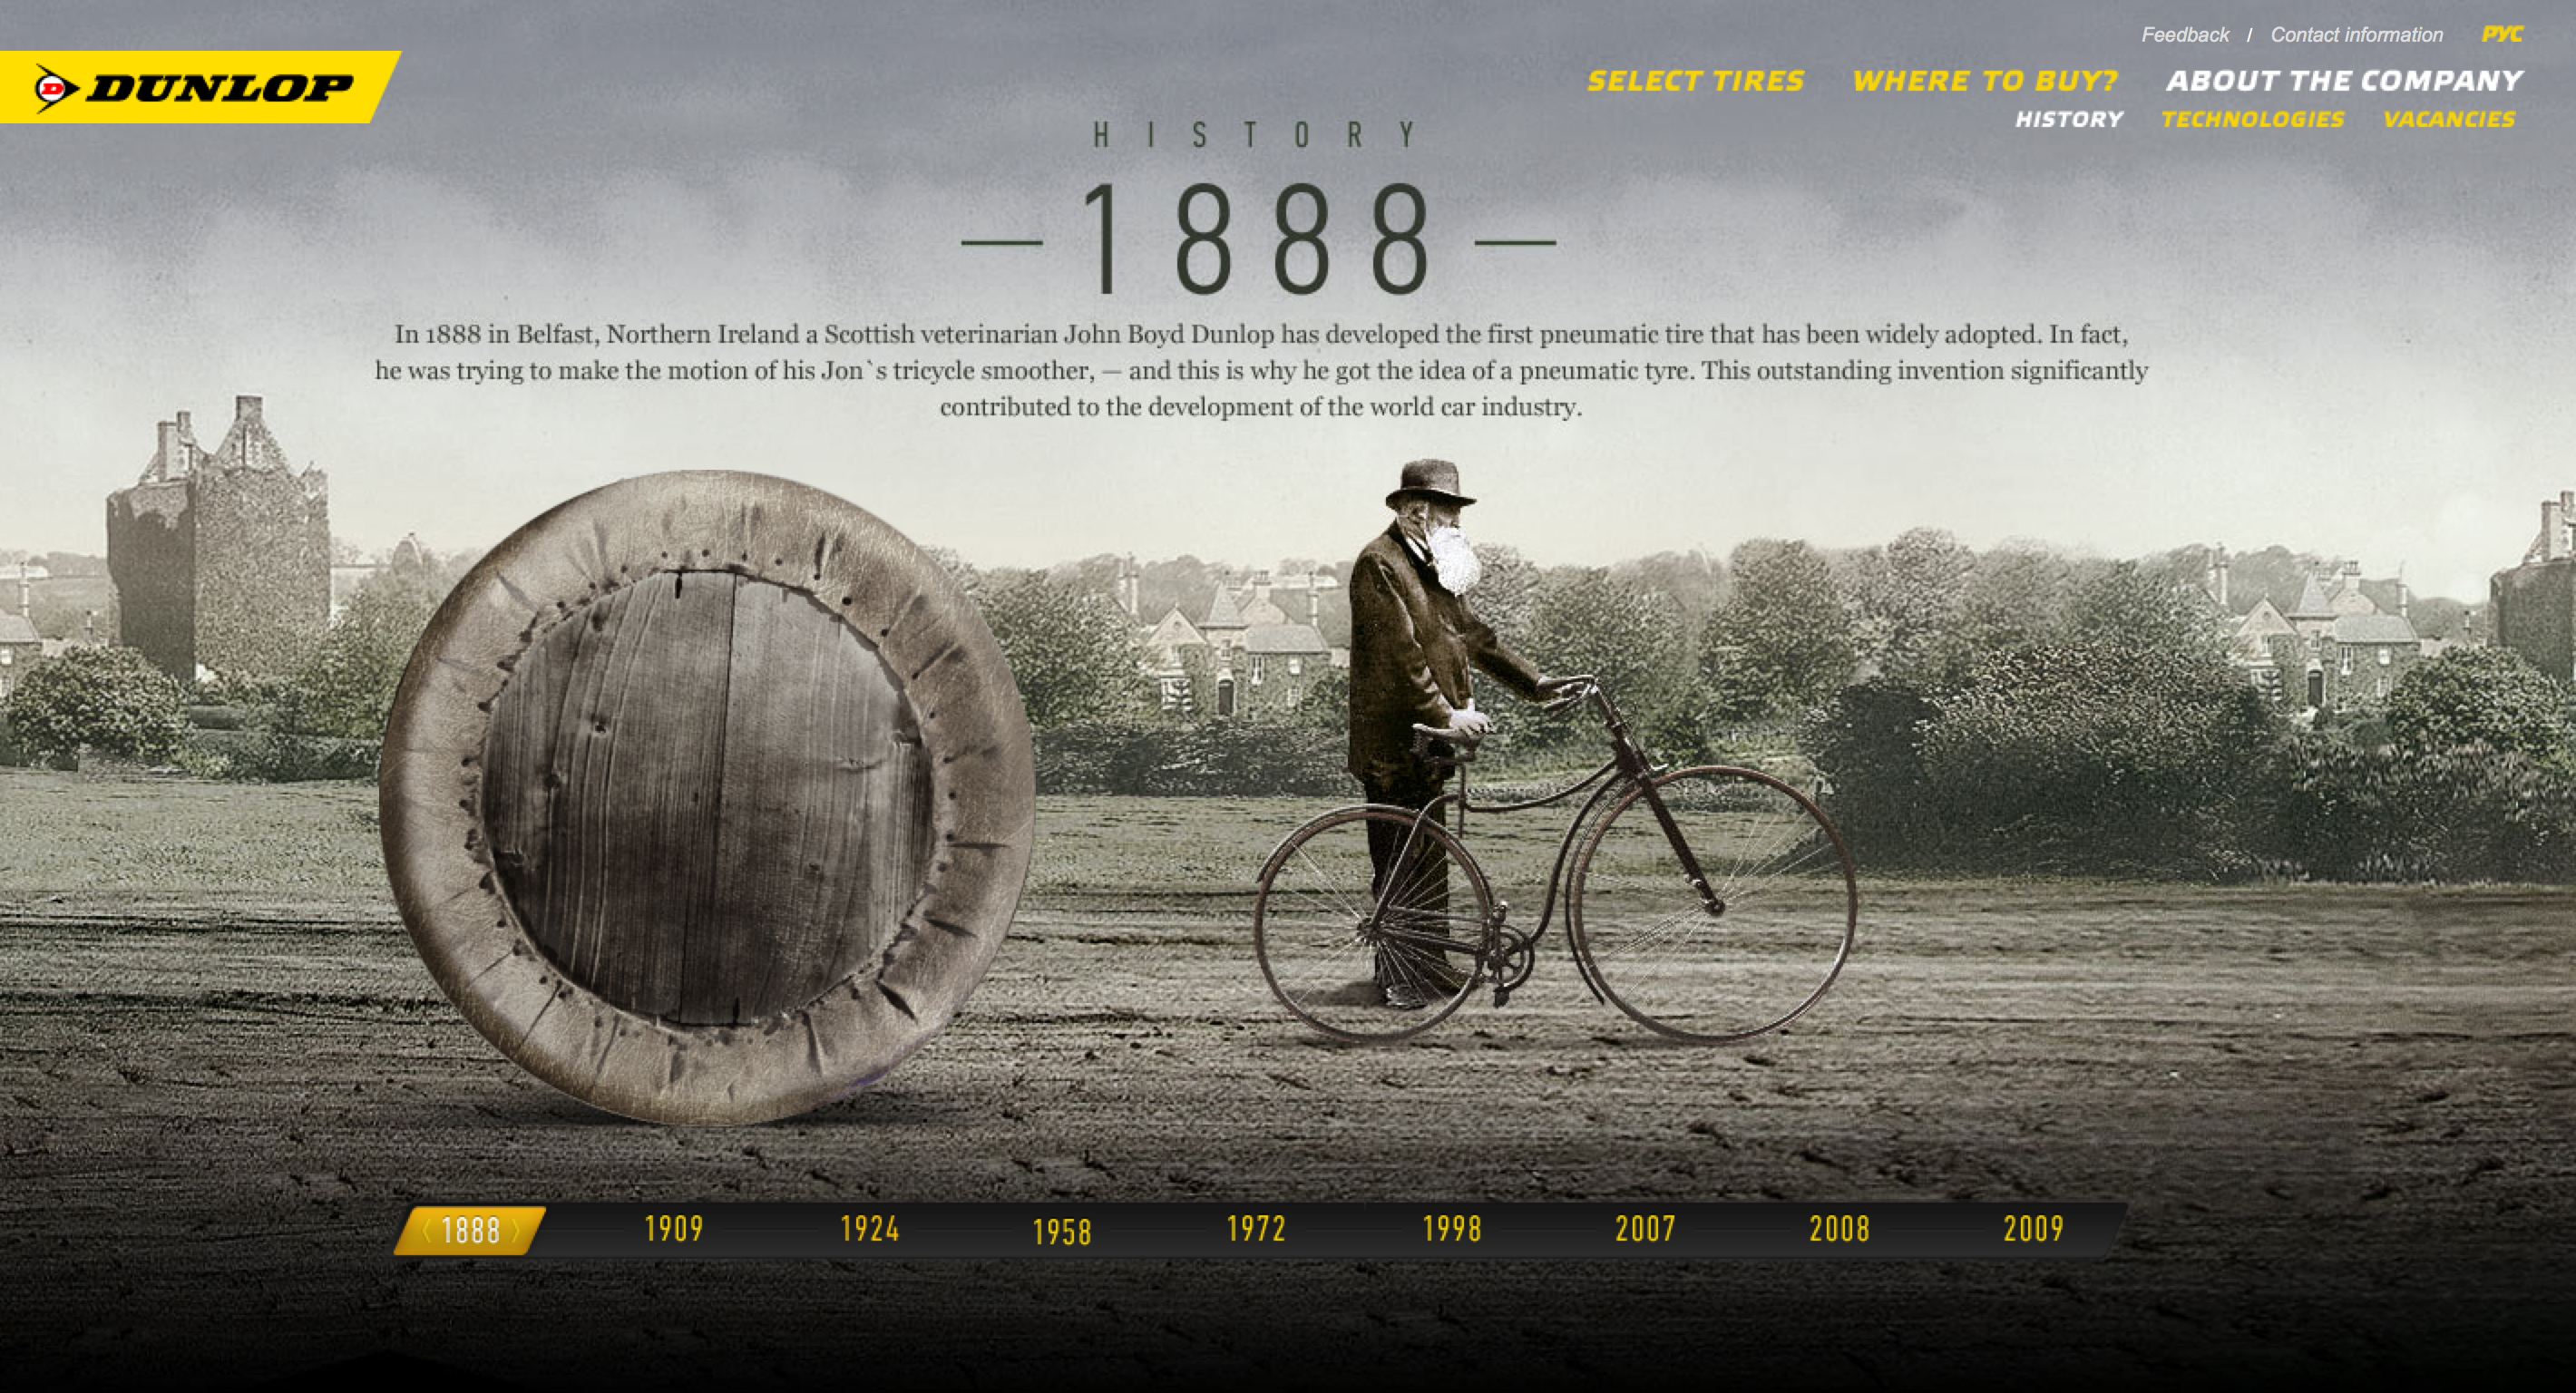 Dunlop History Provides The User With An Immerse Look At Company Through Movement Image Type Tire Ac Web Design Examples Web Design Web Graphic Design [ 1536 x 2840 Pixel ]